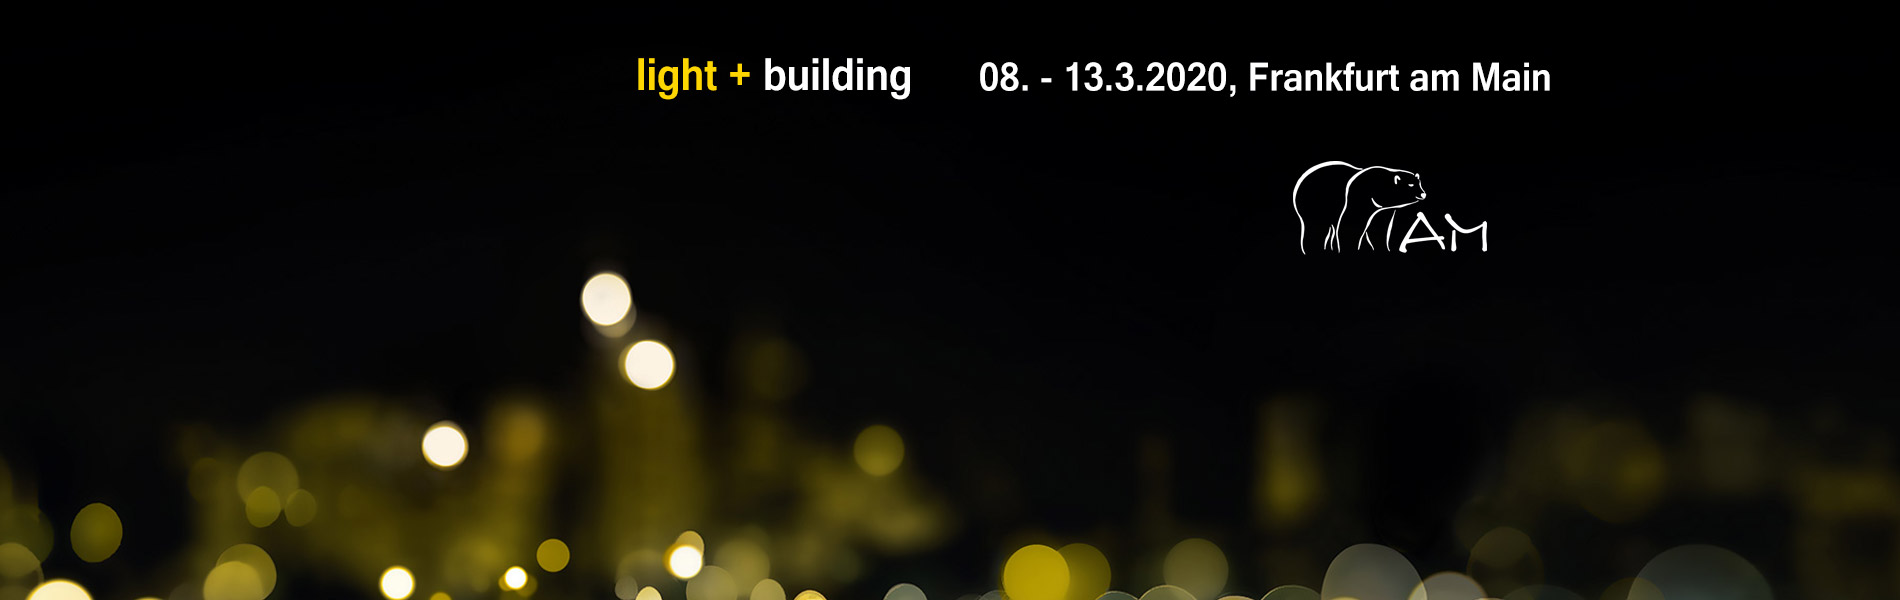 Light & Building 2020